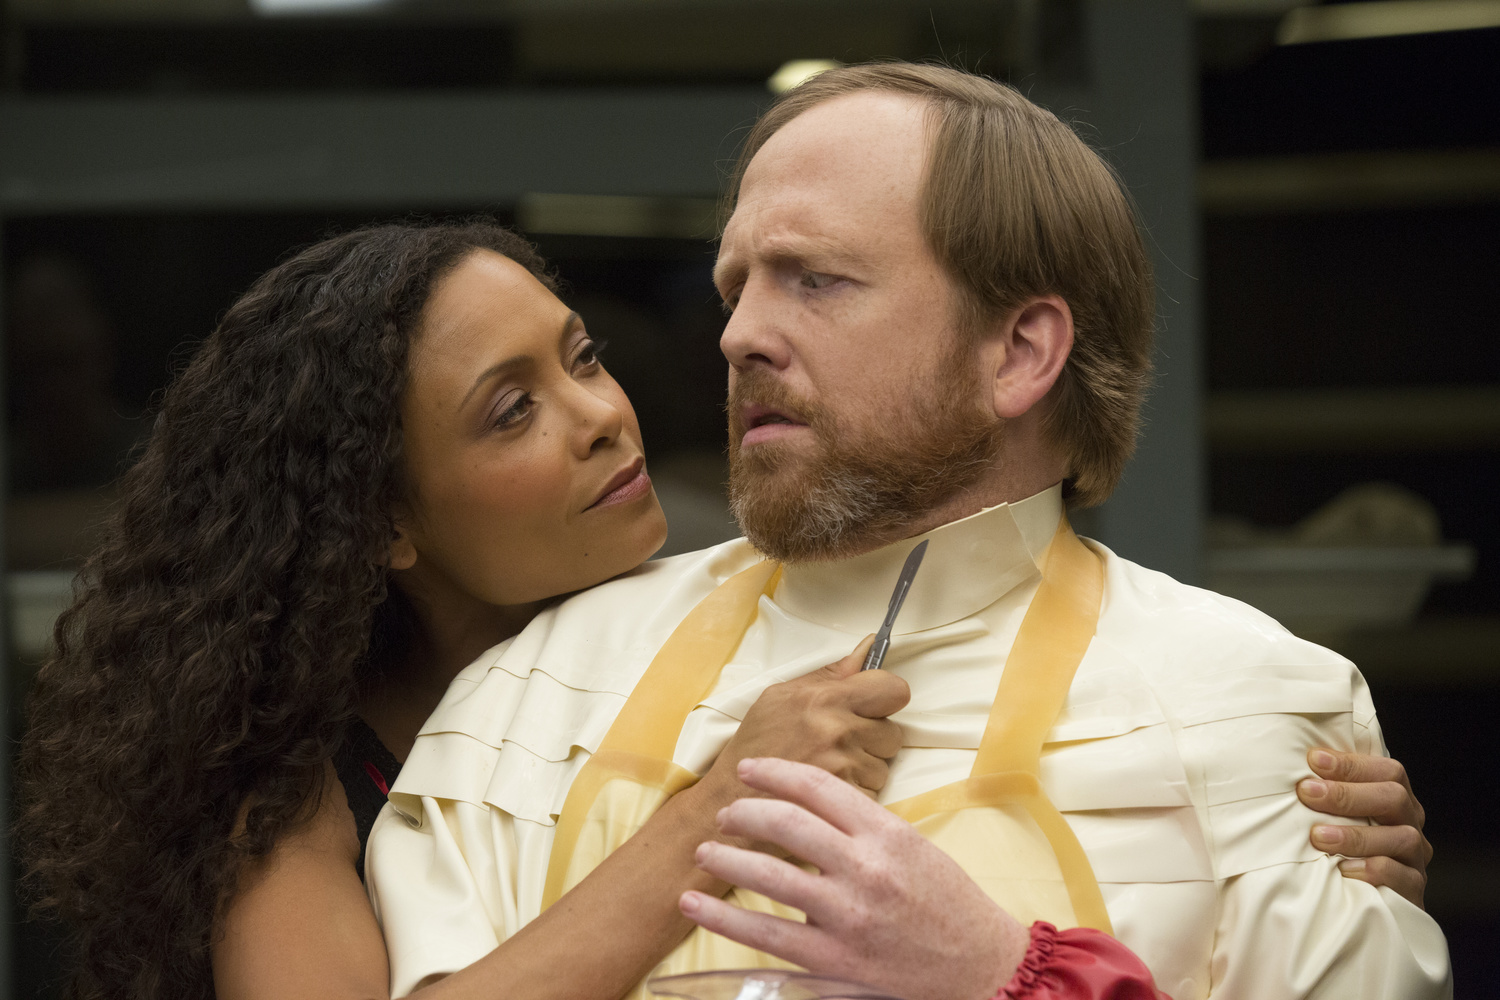 https://i2.wp.com/www.indiewire.com/wp-content/uploads/2016/11/thandie-newton-as-maeve-and-ptolemy-slocum-as-sylvester-credit-john-p-johnson-hbo.jpg